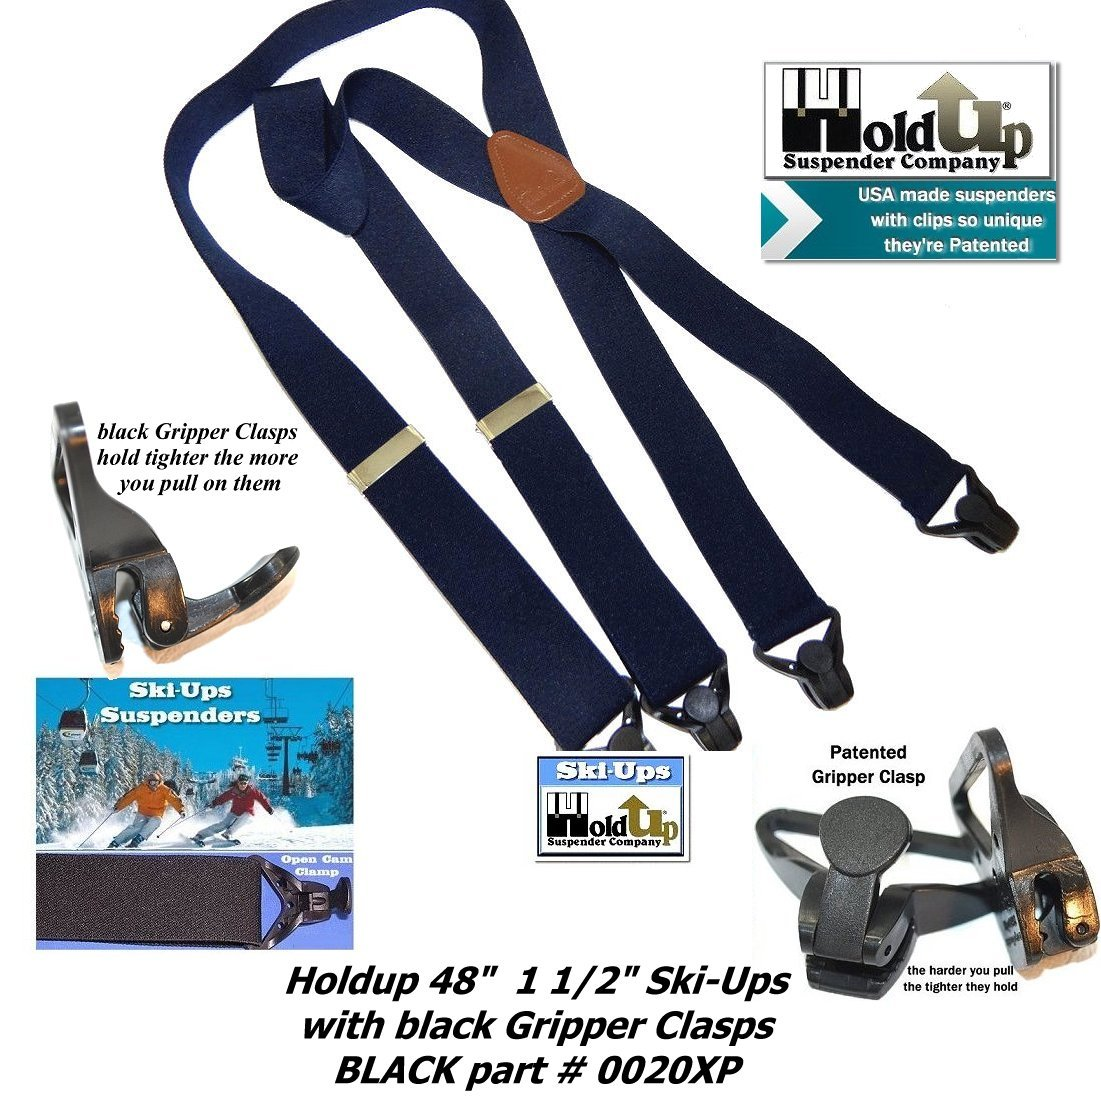 HoldUp All Black Snow Ski-Ups Suspenders in 1 1/2'' width with Patented black Gripper Clasps in X-back style by Hold-Up Suspender Co. (Image #2)